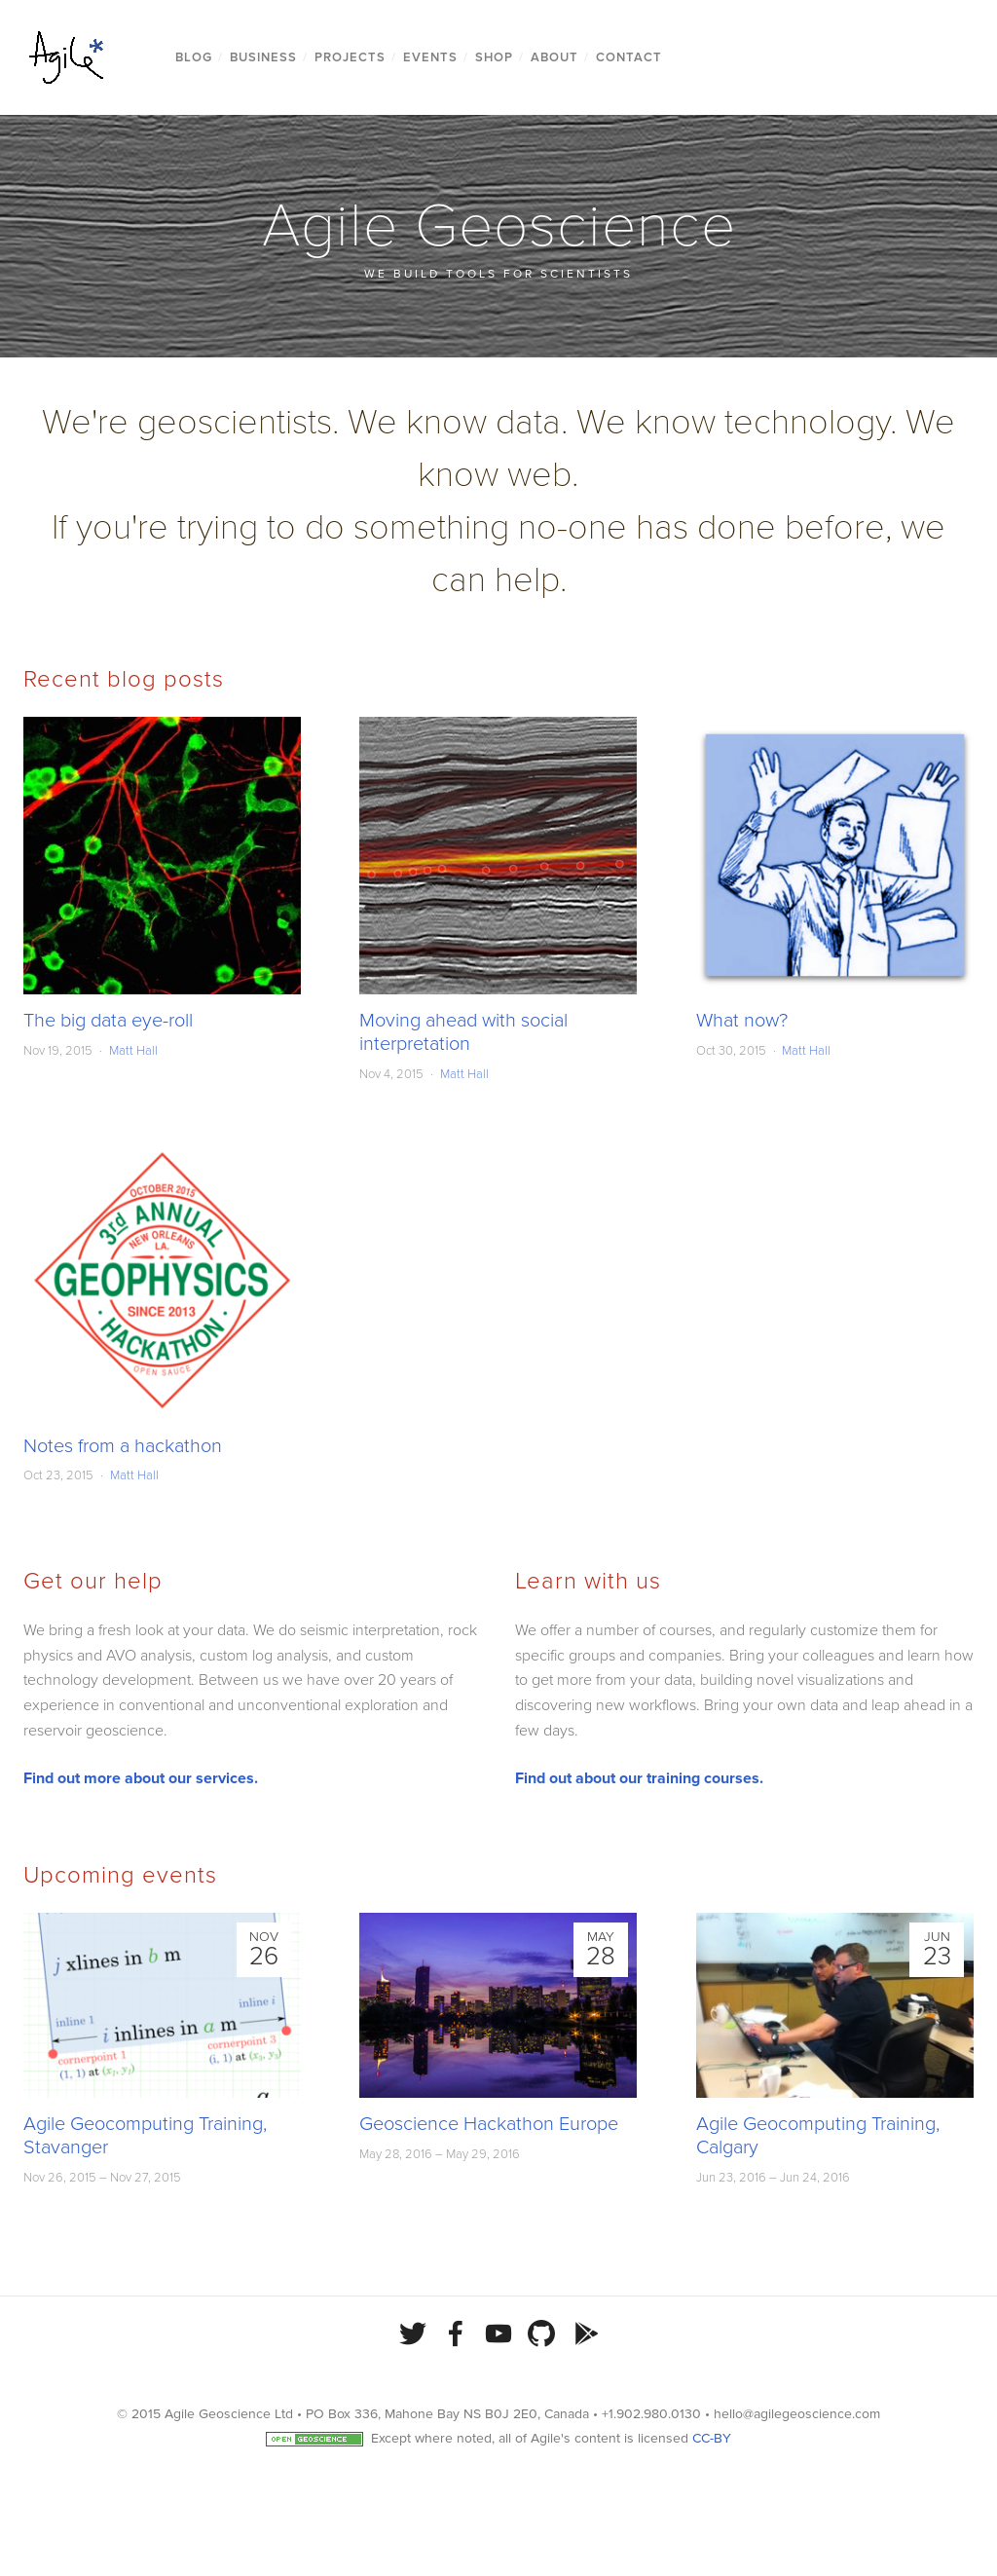 Owler Reports - Agile Geoscience Blog x lines of Python: read and